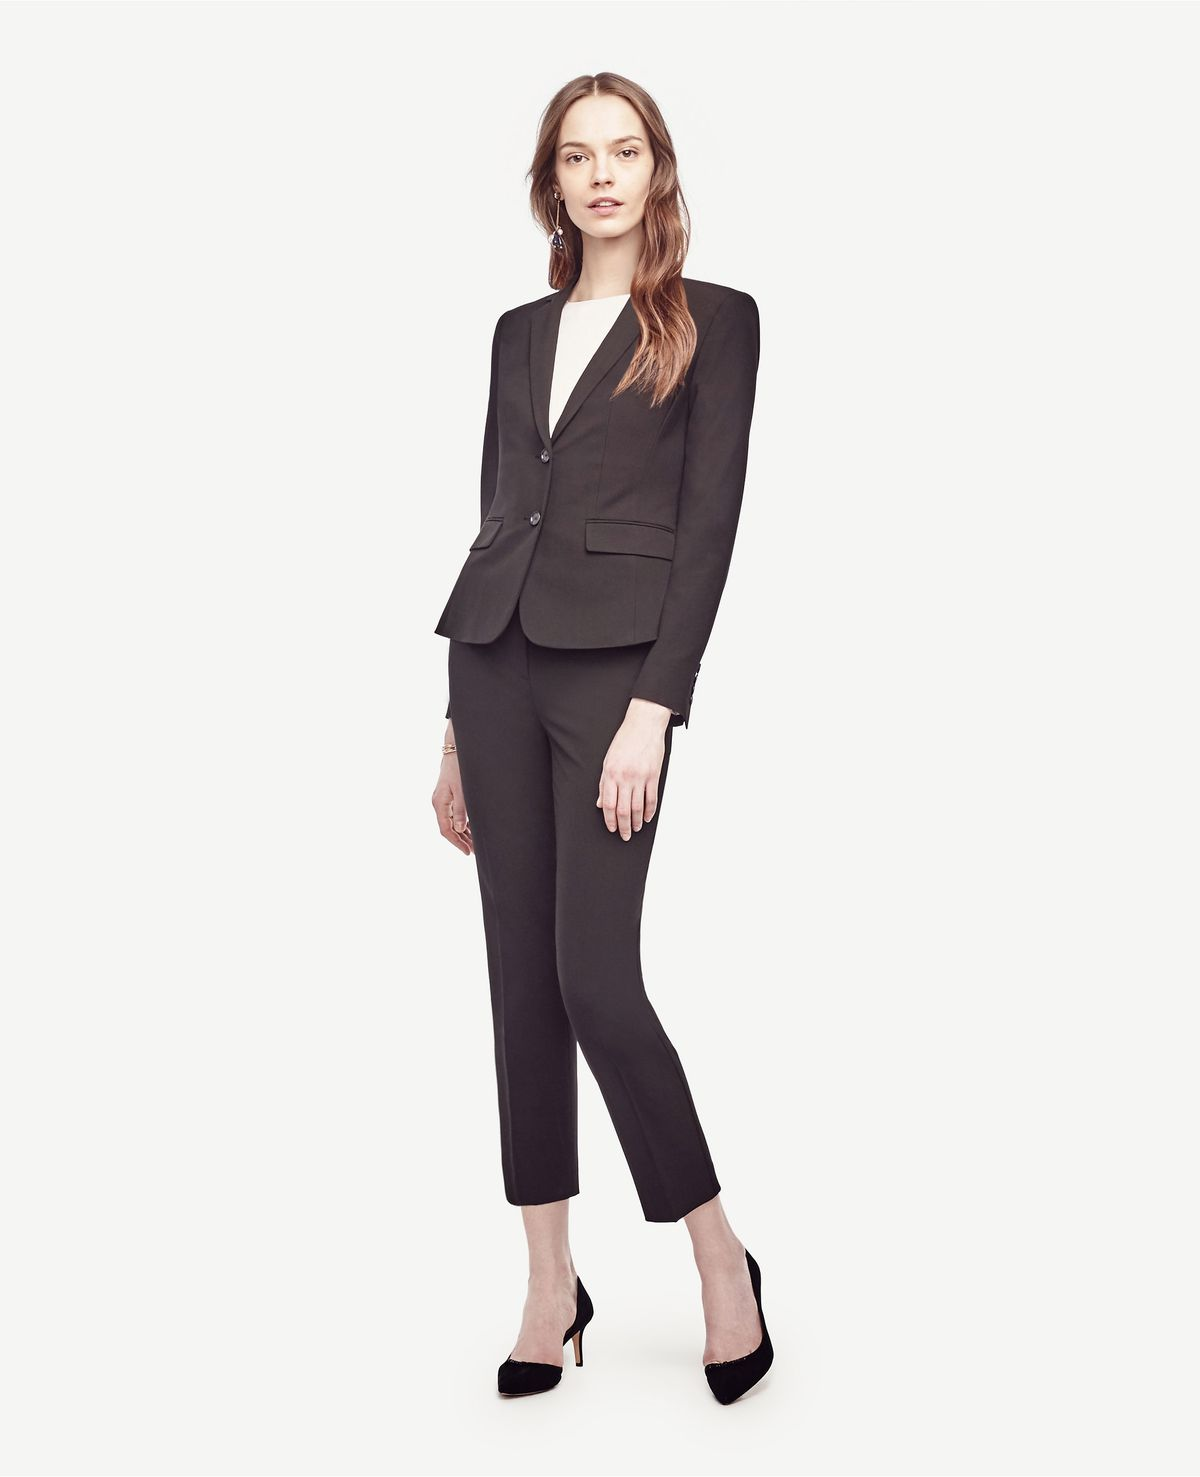 e2a6285c19 A model wearing ankle pants and a blazer